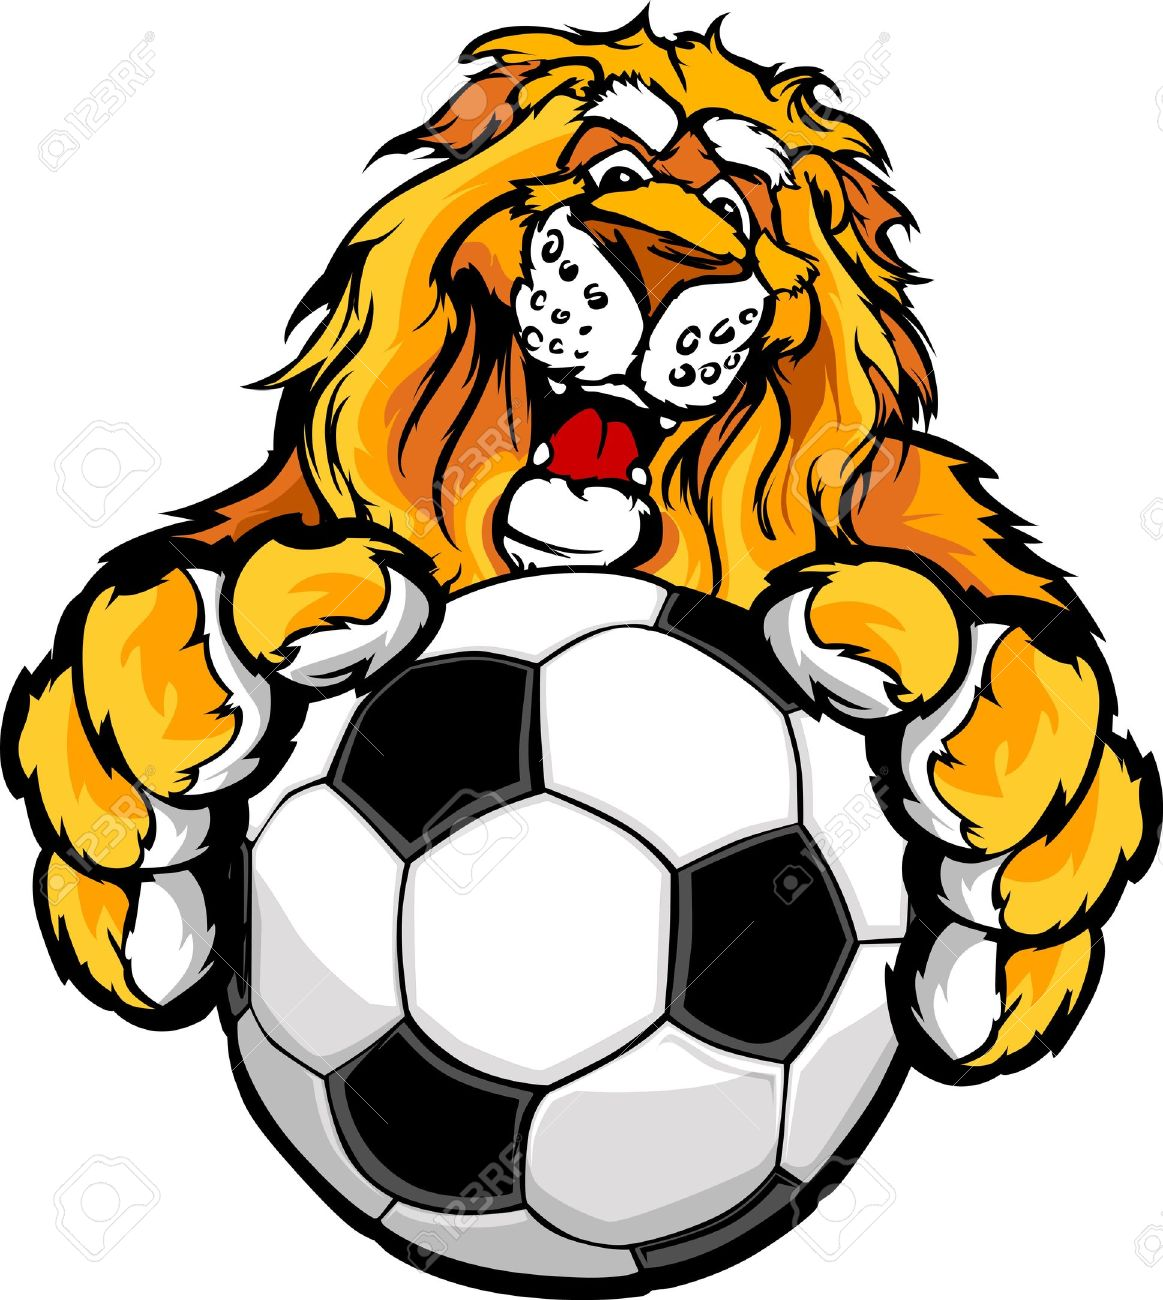 Graphic Mascot Image of a Friendly Lion with Paws on a Soccer Ball Stock Vector - 14592022